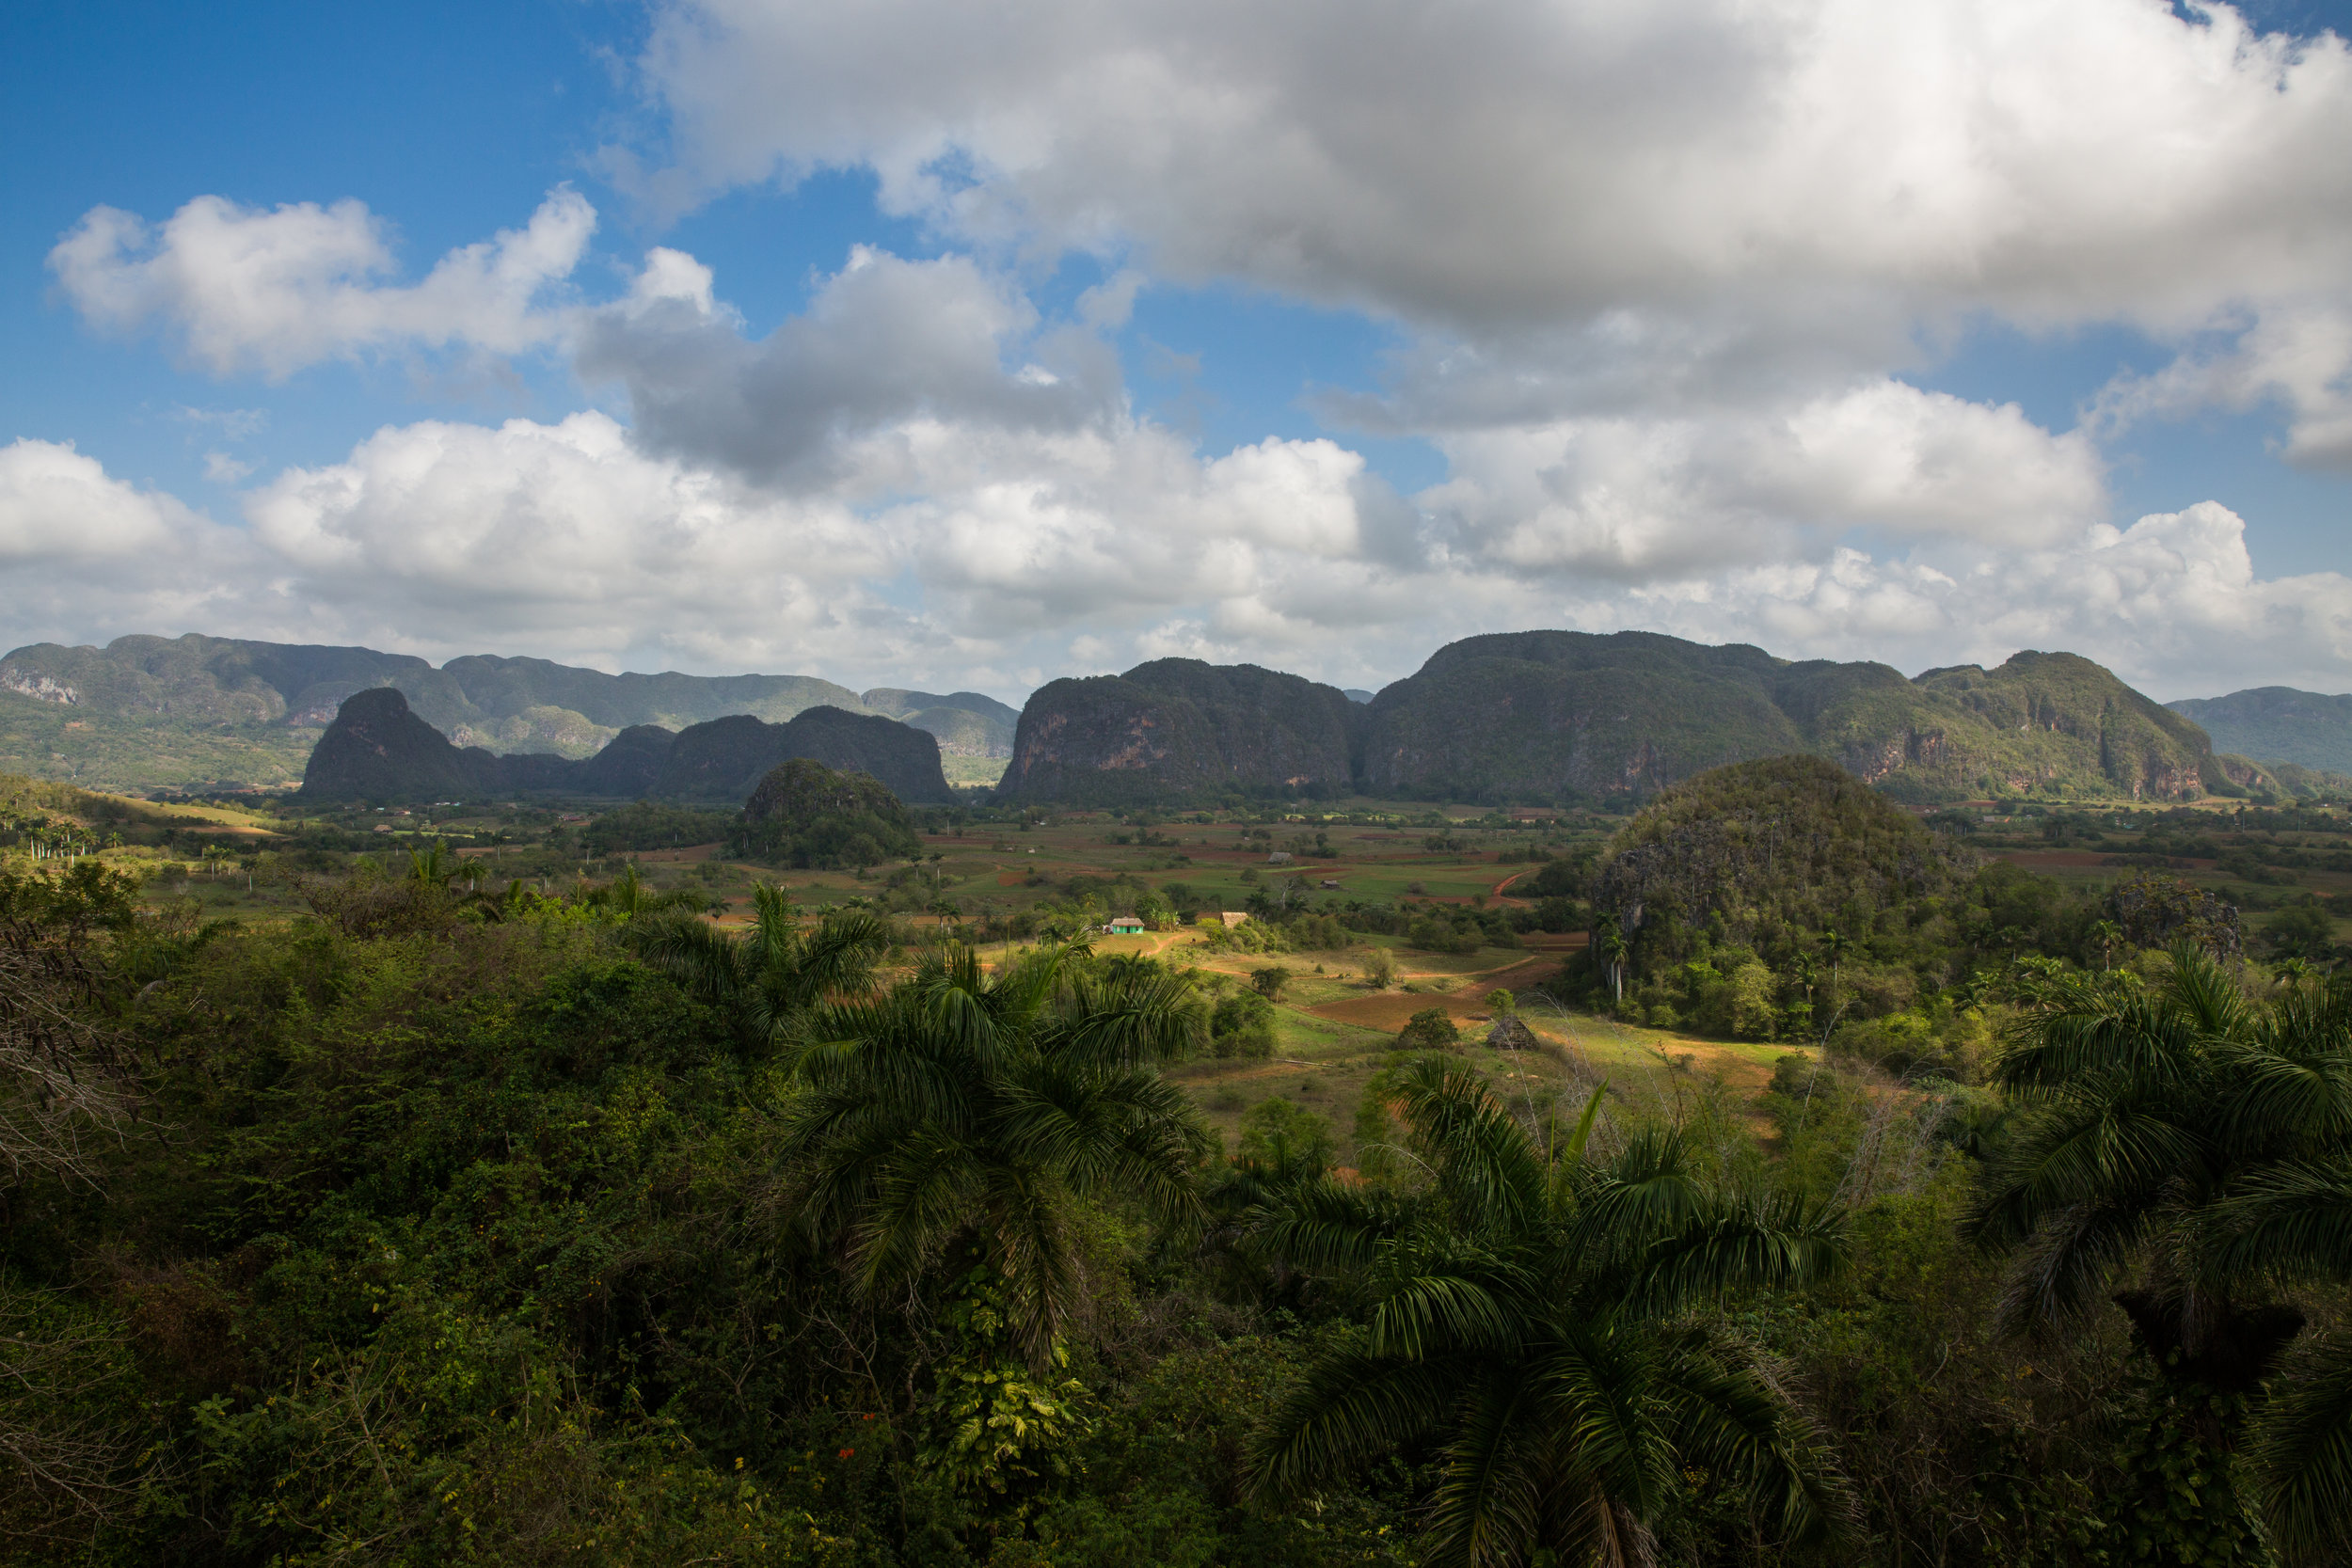 What most people will tell you is the most impressive scene in Cuba: Valley de Viñales. Limestone cliffs called mogotes raise from the floor of the tobacco farms of the basin.